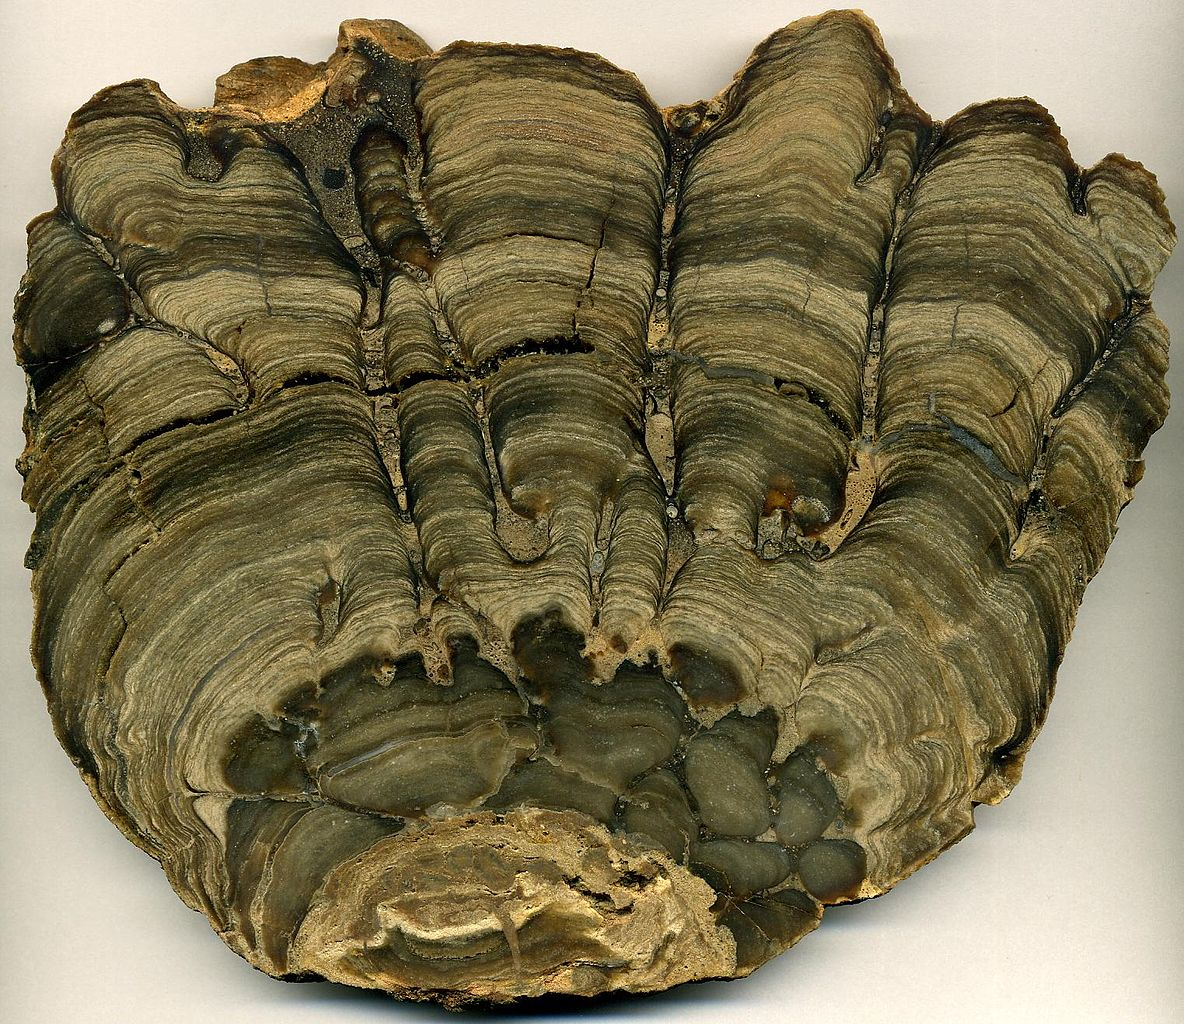 what are stromatolites? essay Stromatolite fossils are not only being used to research hurricanes and climate but also in space exploration these bacterial fossils serve as a template for the search for life on other plants stromatolites persist in our modern world as they did 35 billion years ago.